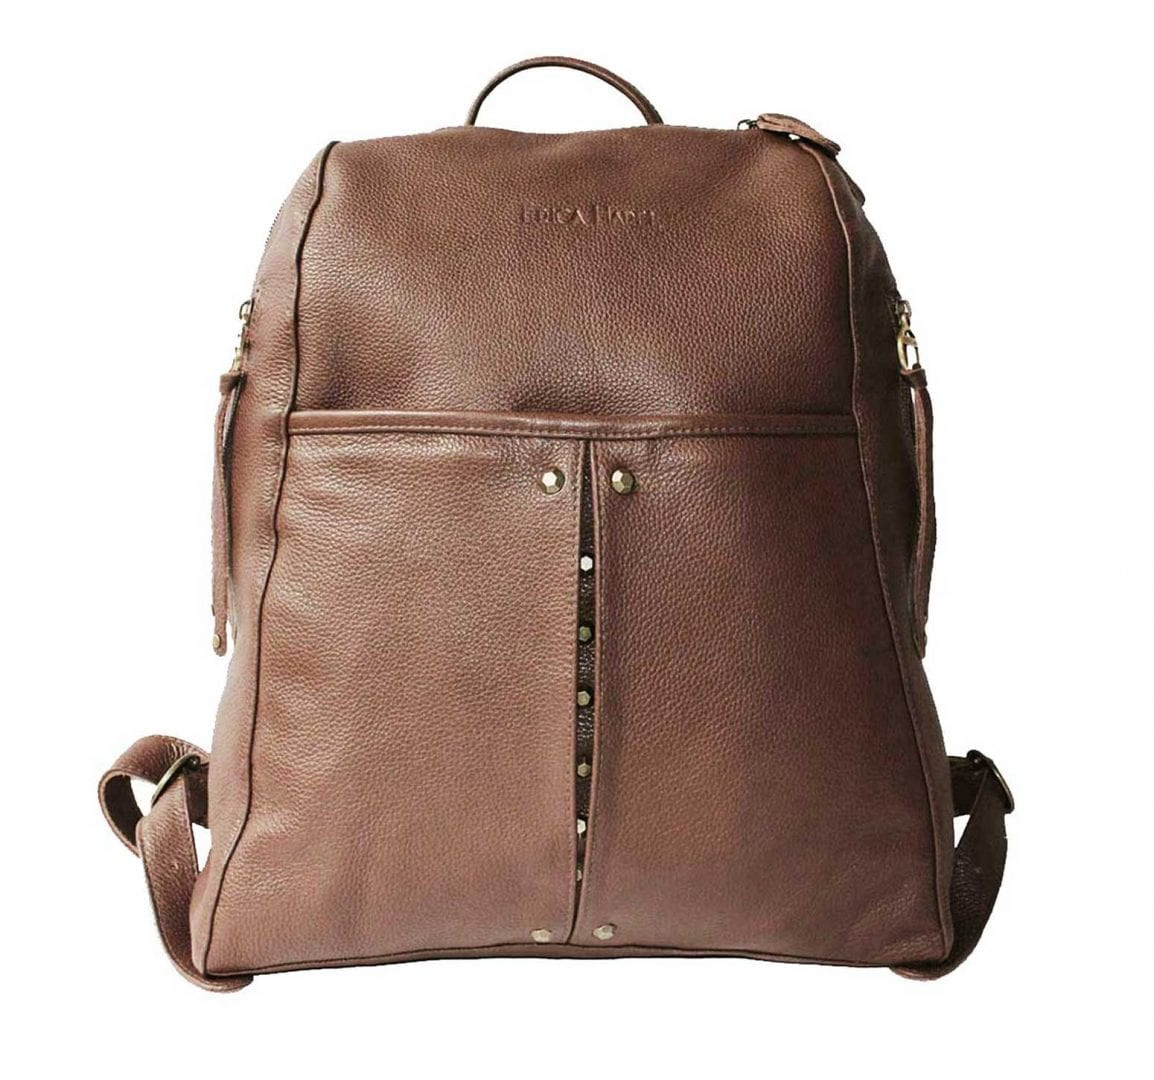 brown leather backpack with studs